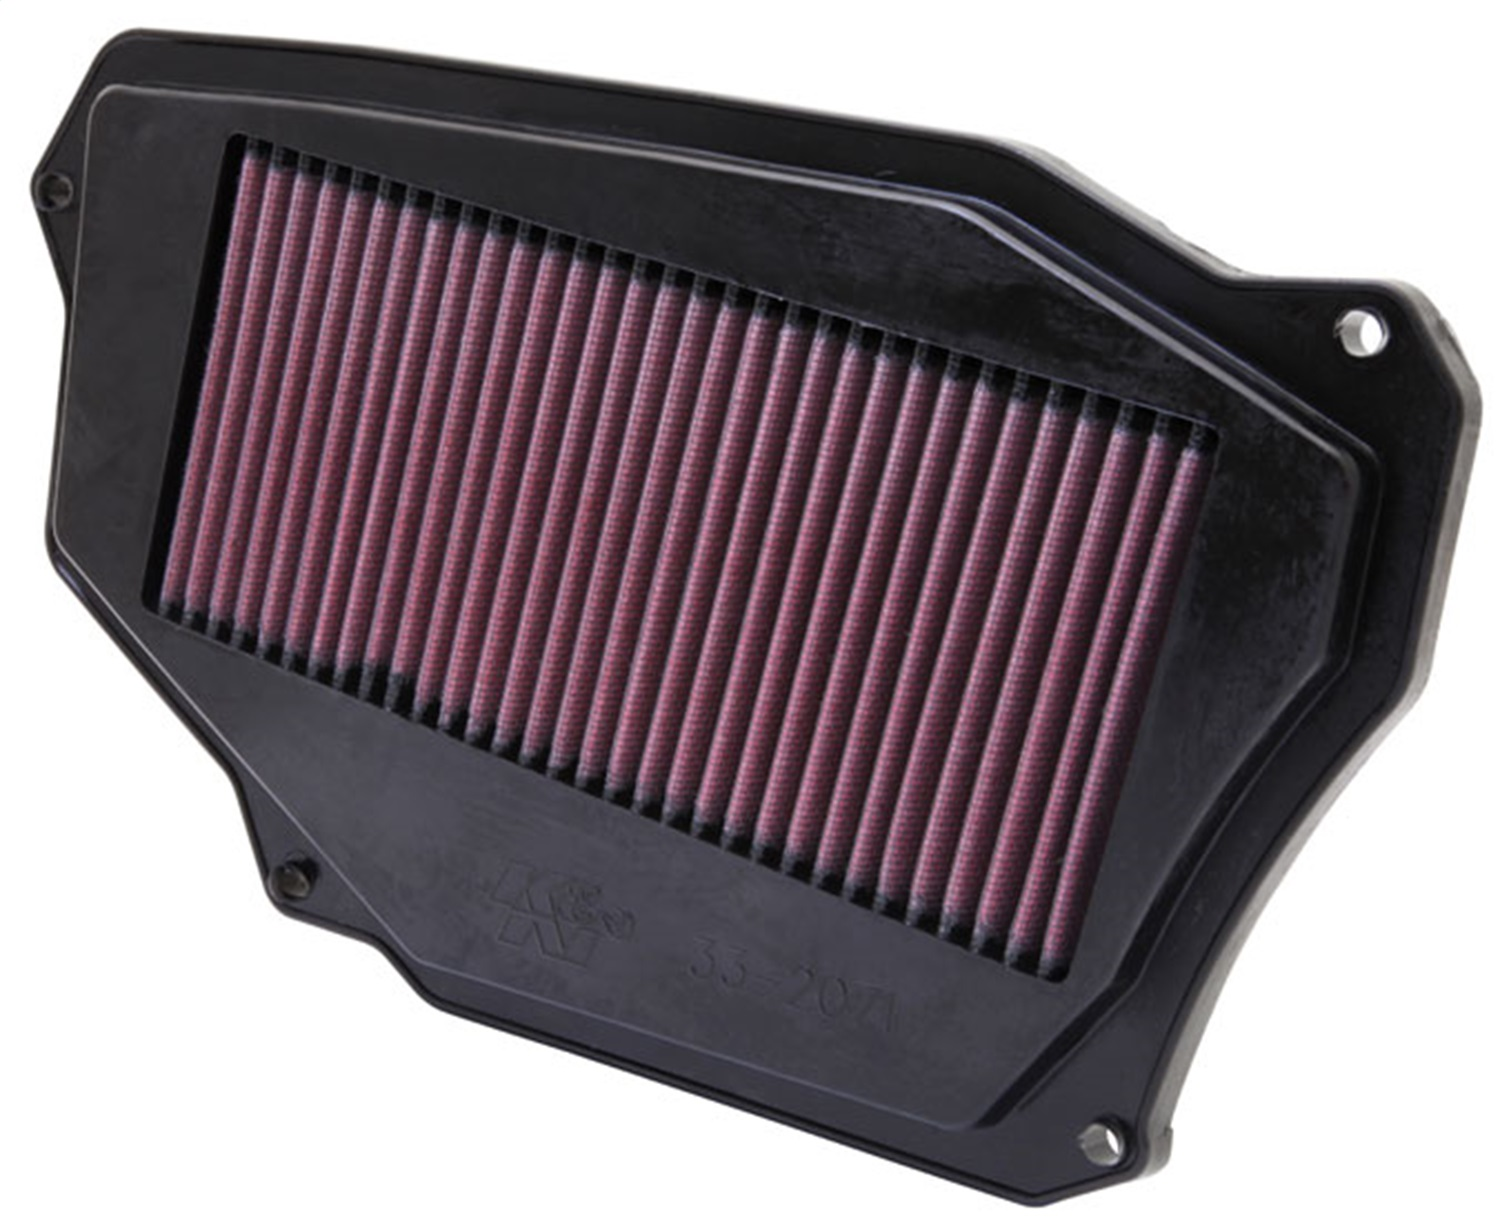 K&N Filters 33-2071 Air Filter Fits 94-99 Accord CL Oasis Odyssey 33-2071